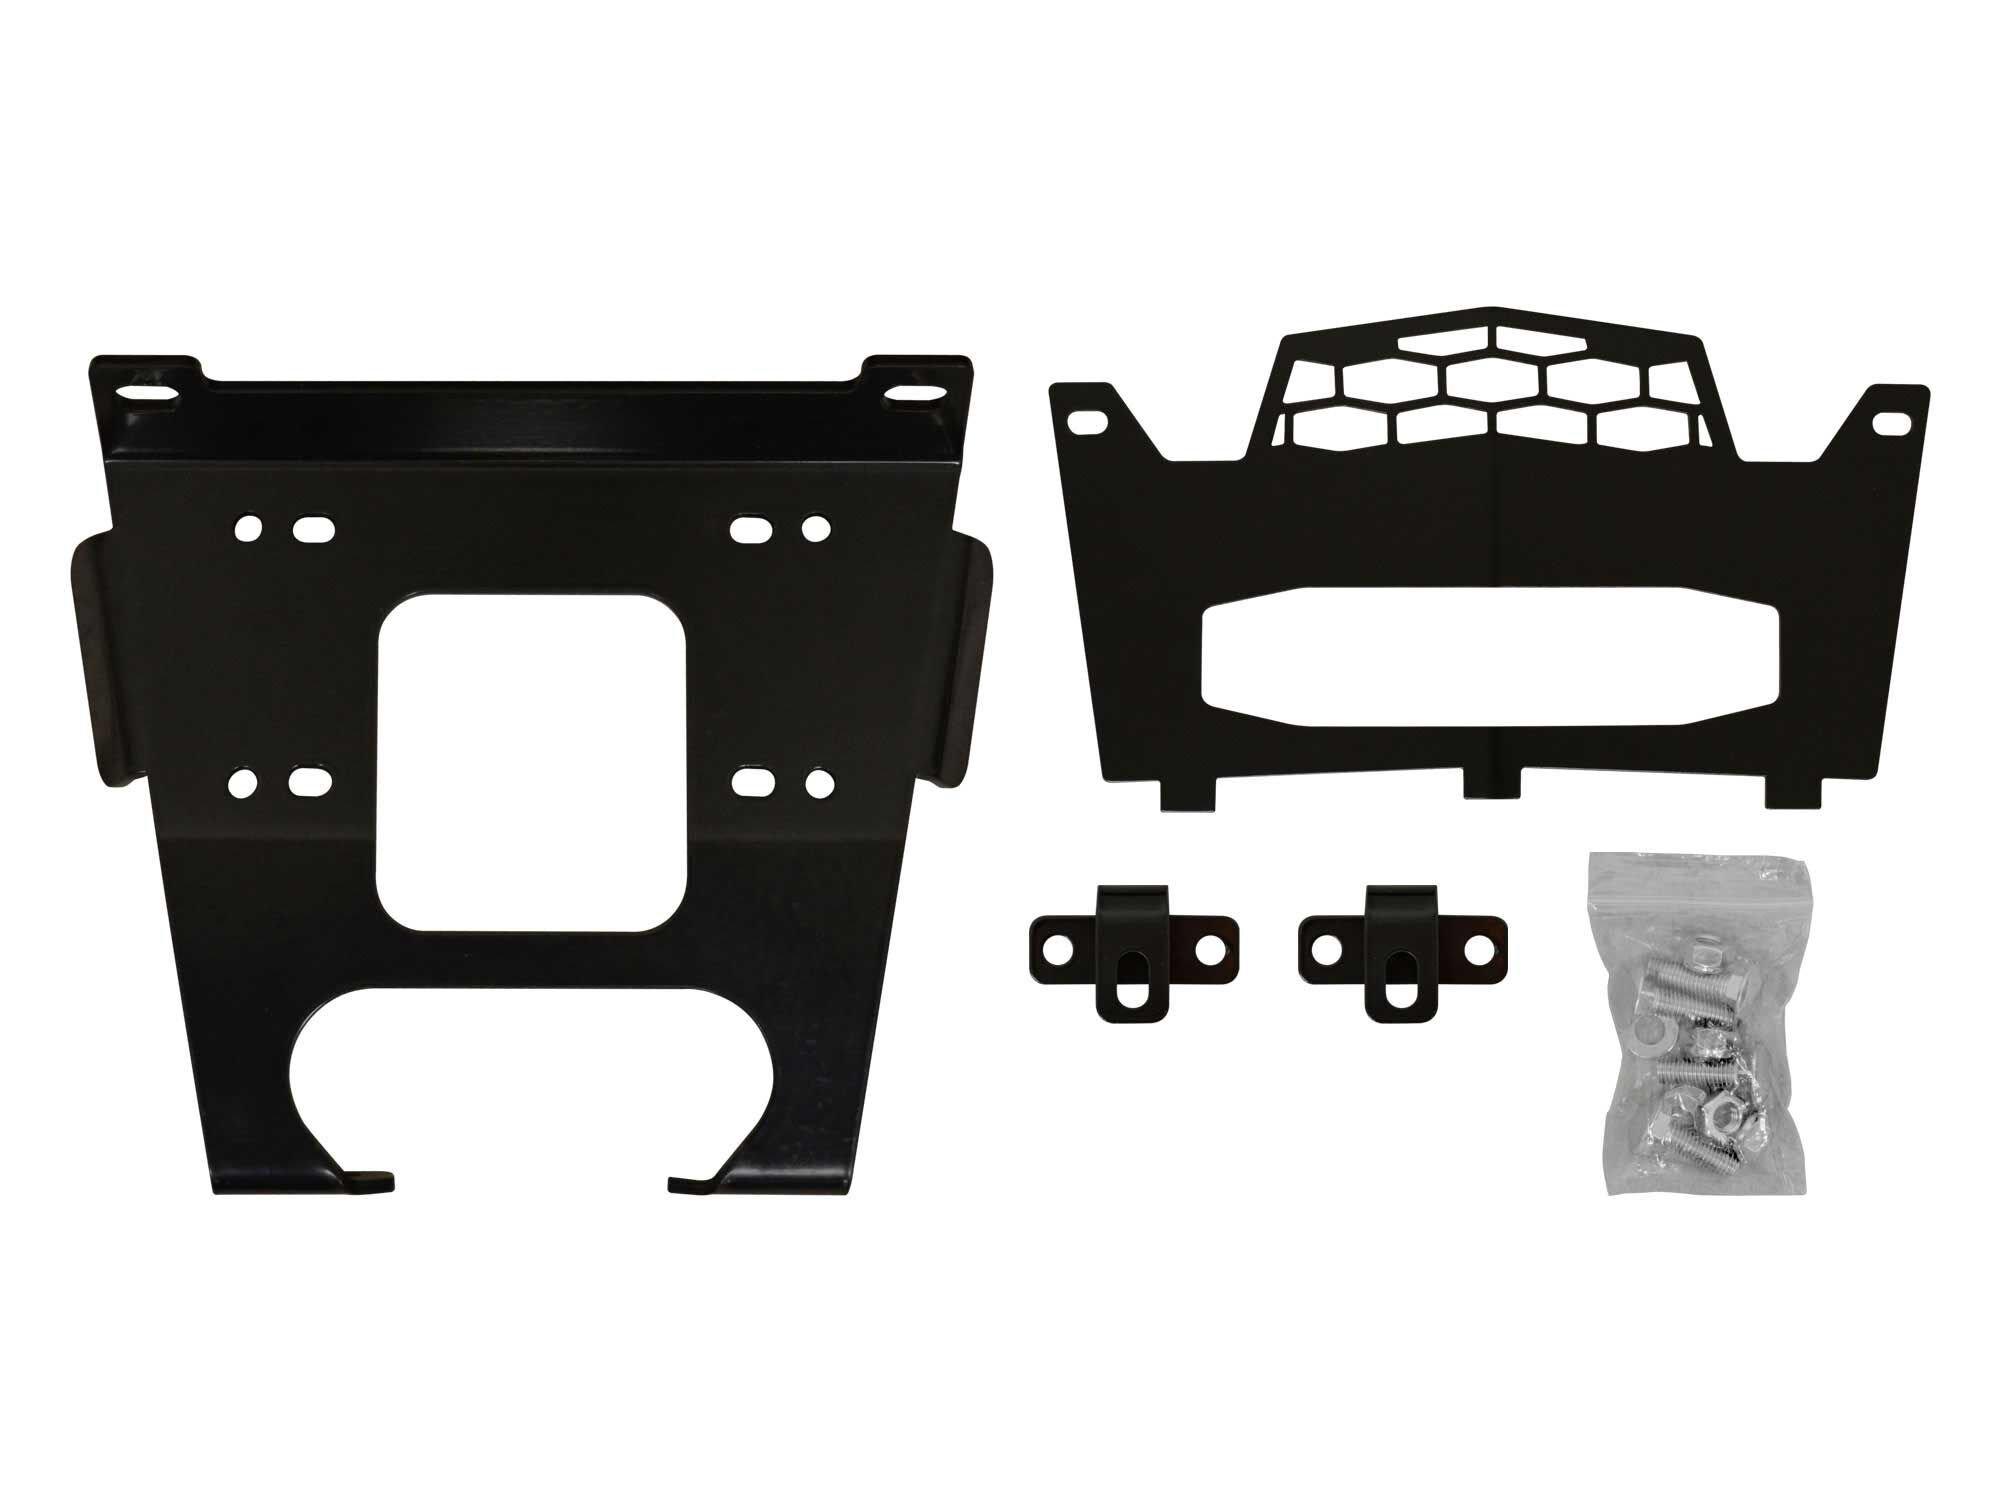 SuperATV Polaris RZR 900/900 S / 900 4 Seater Heavy Duty Winch Mounting Plate - Fits Machines Prior to 8/31/2014